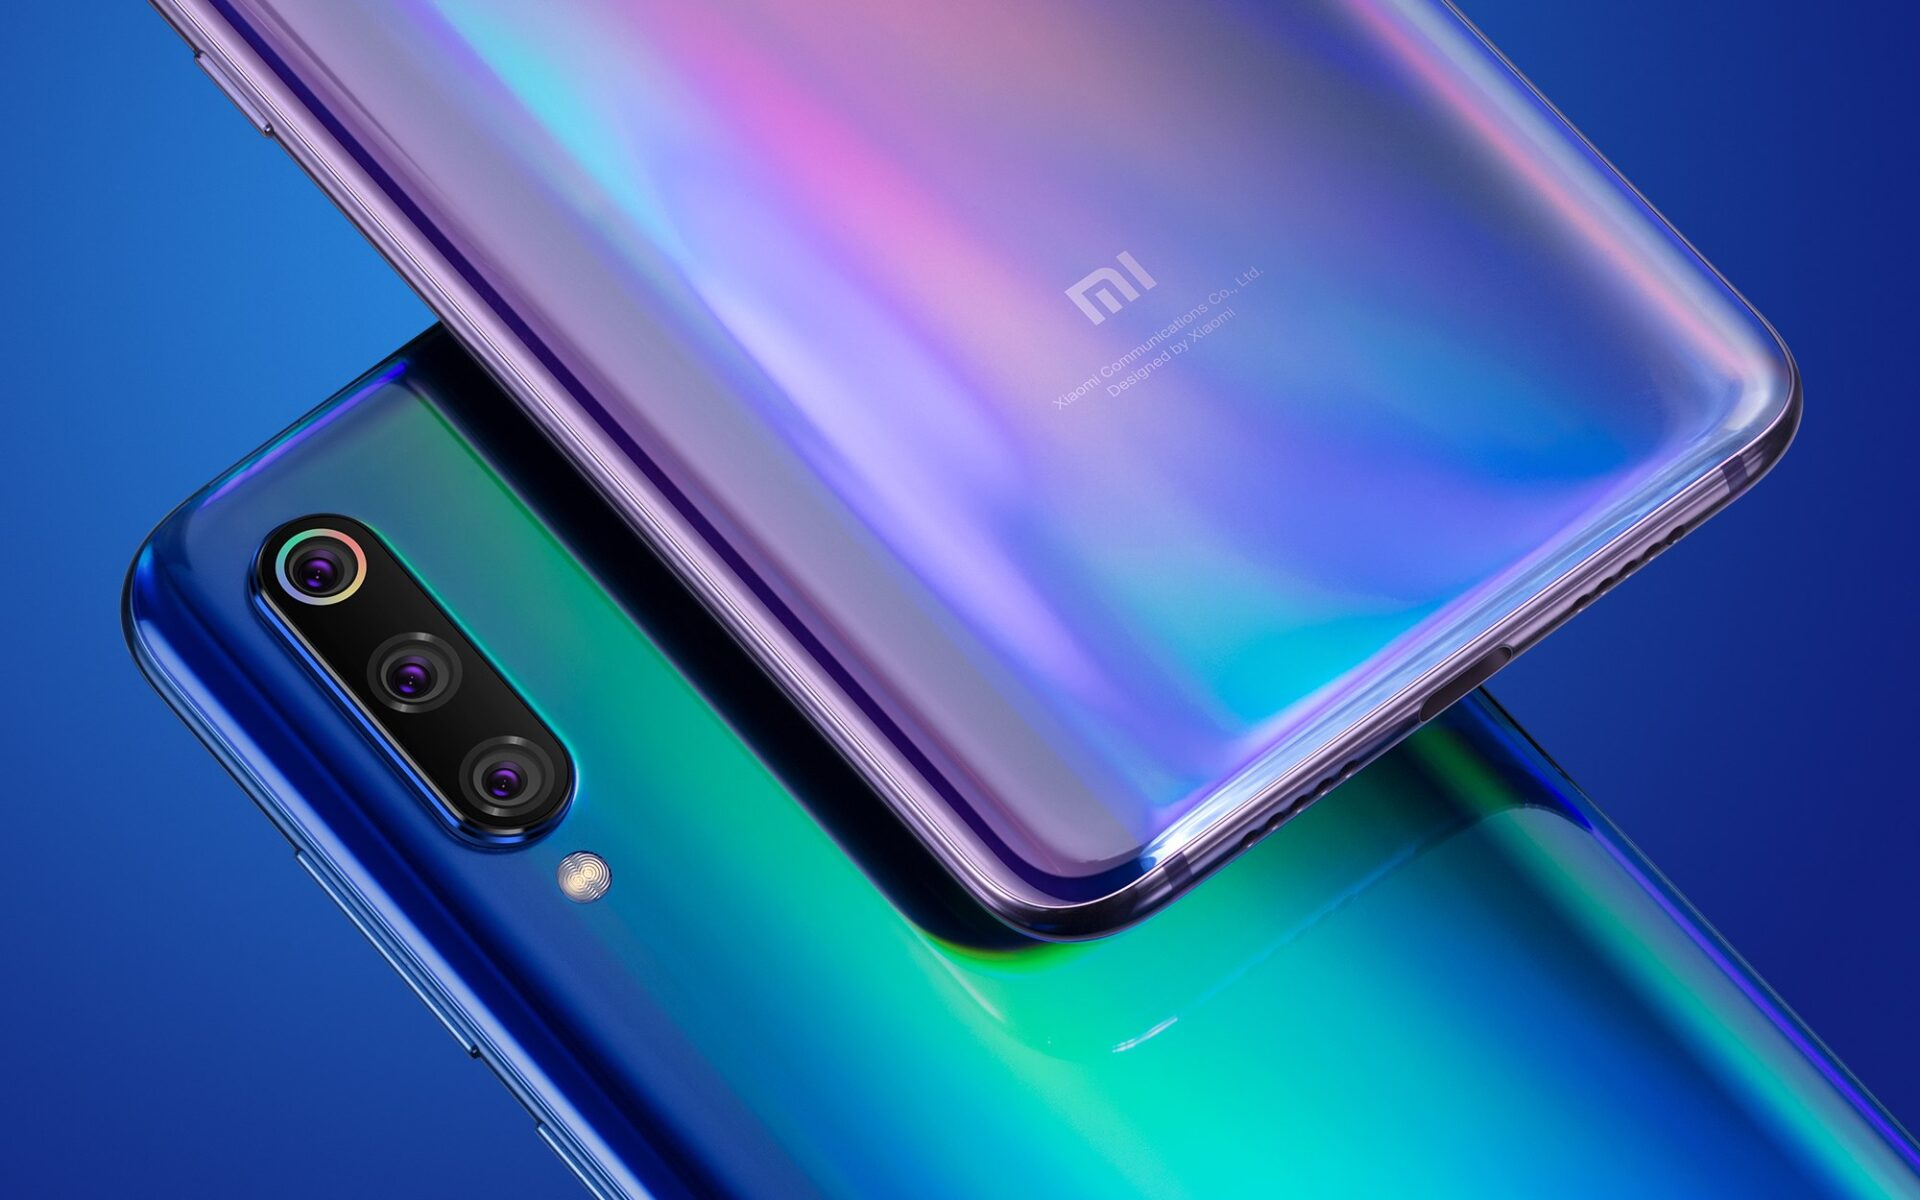 Xiaomi Mi 9: in arrivo la prima closed beta basata su Android Q